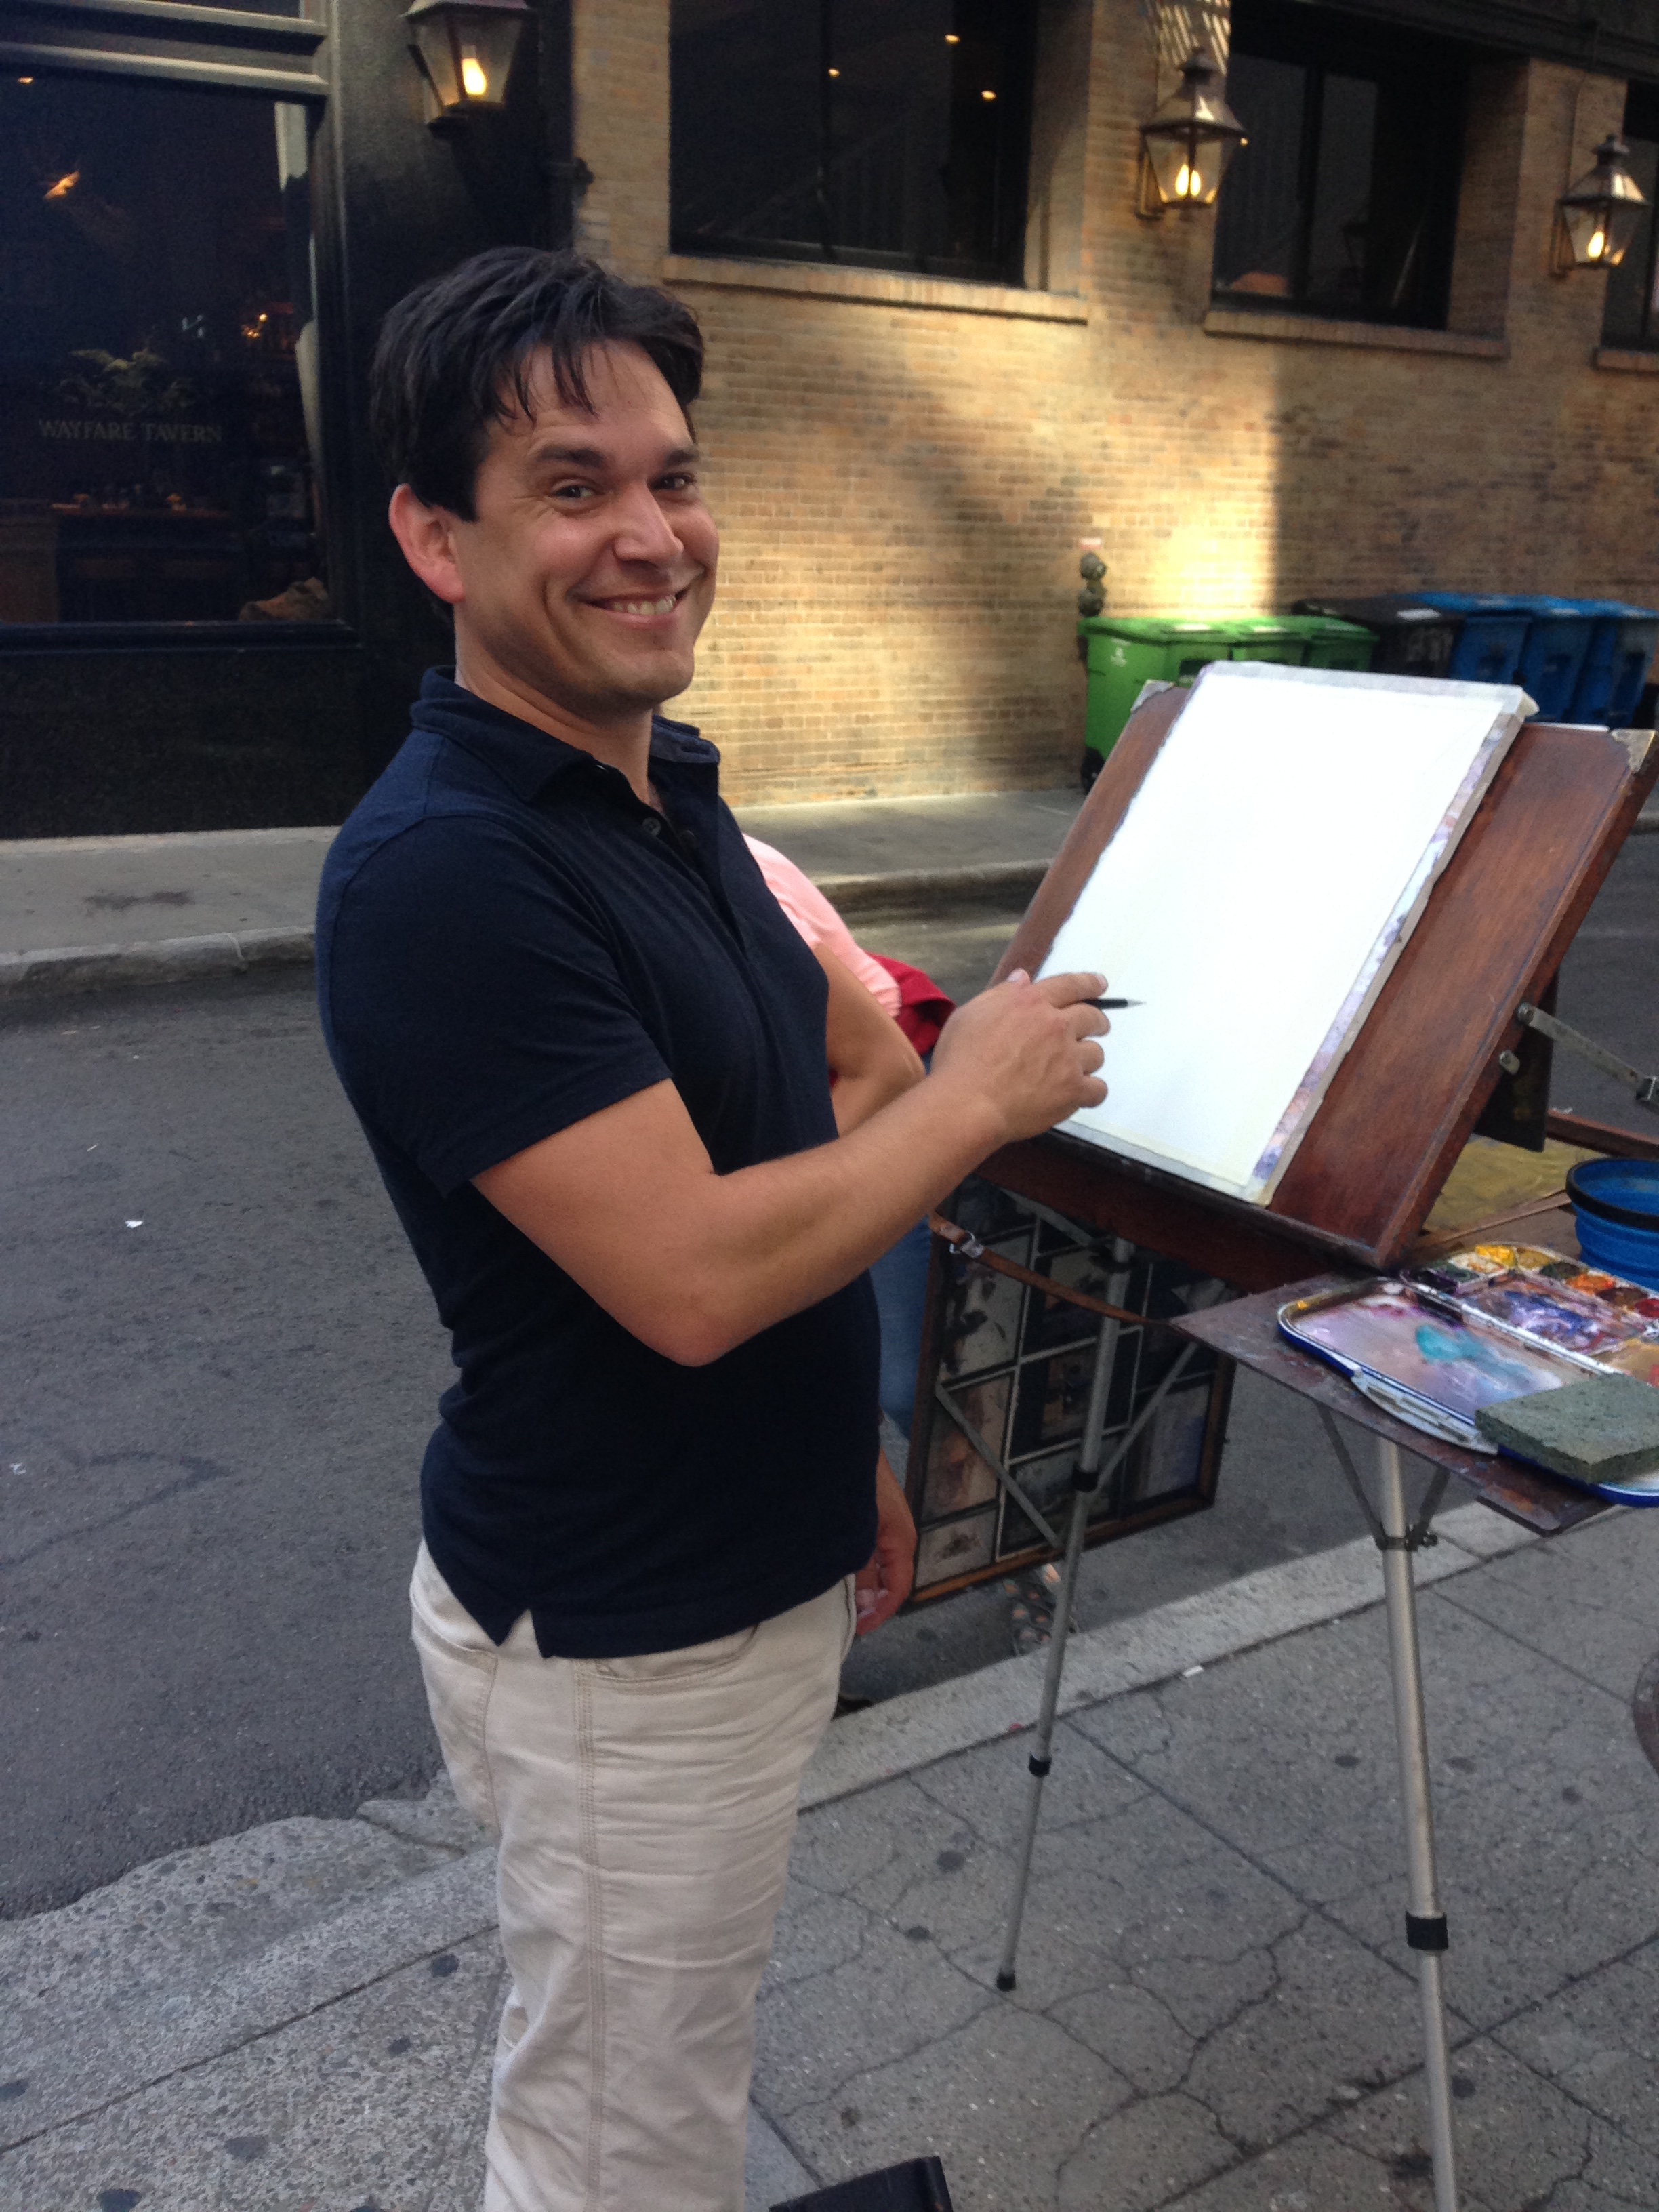 That's me, at Josephs Easel. He let some of us paint on it, now and then. ! A pretty ingenious design, btw.